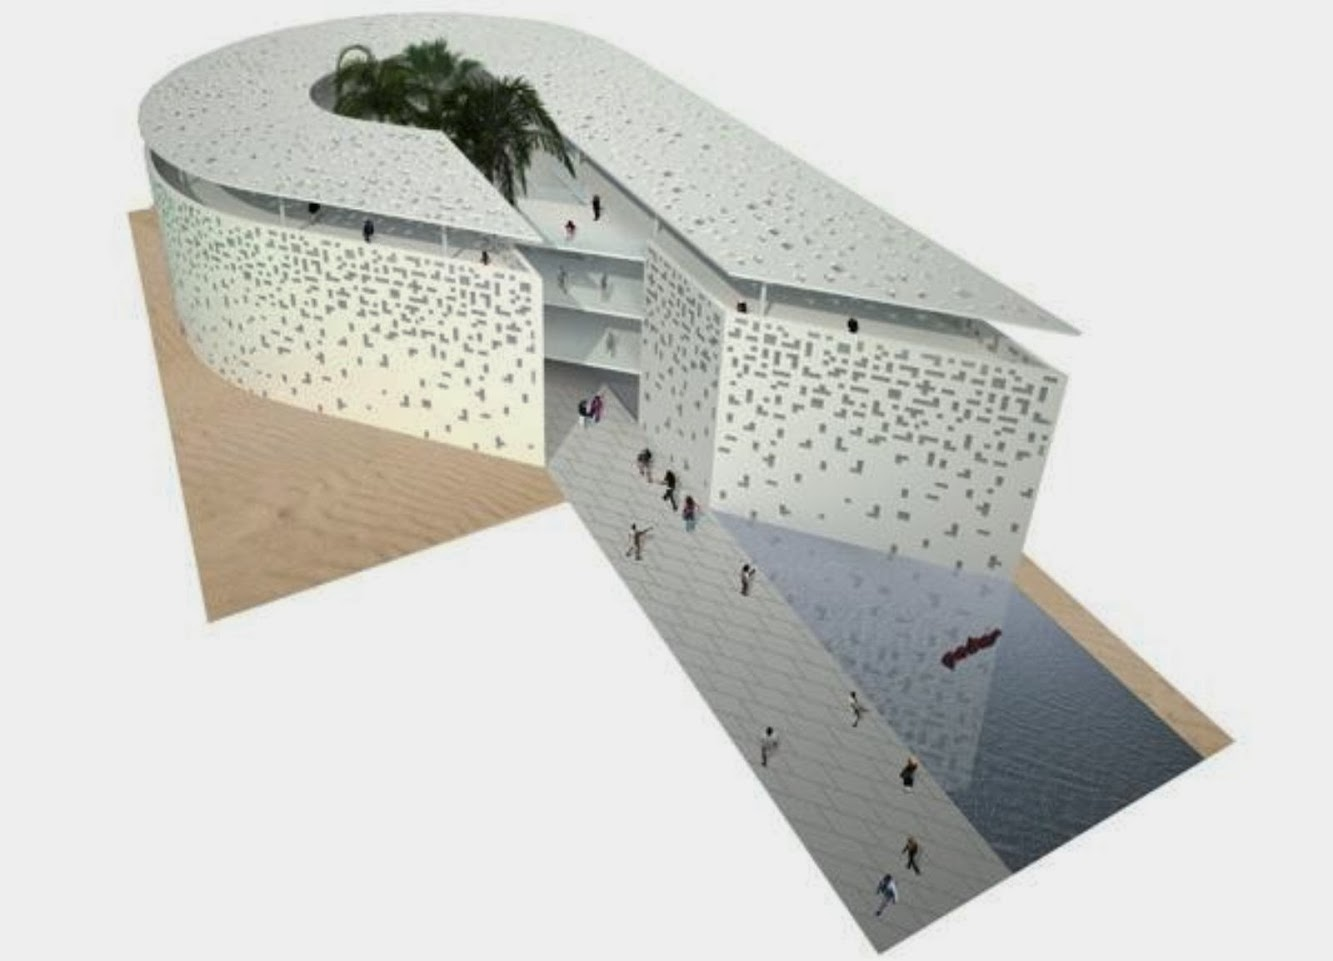 Qatar Pavilion at the Expo 2015 by Andrea